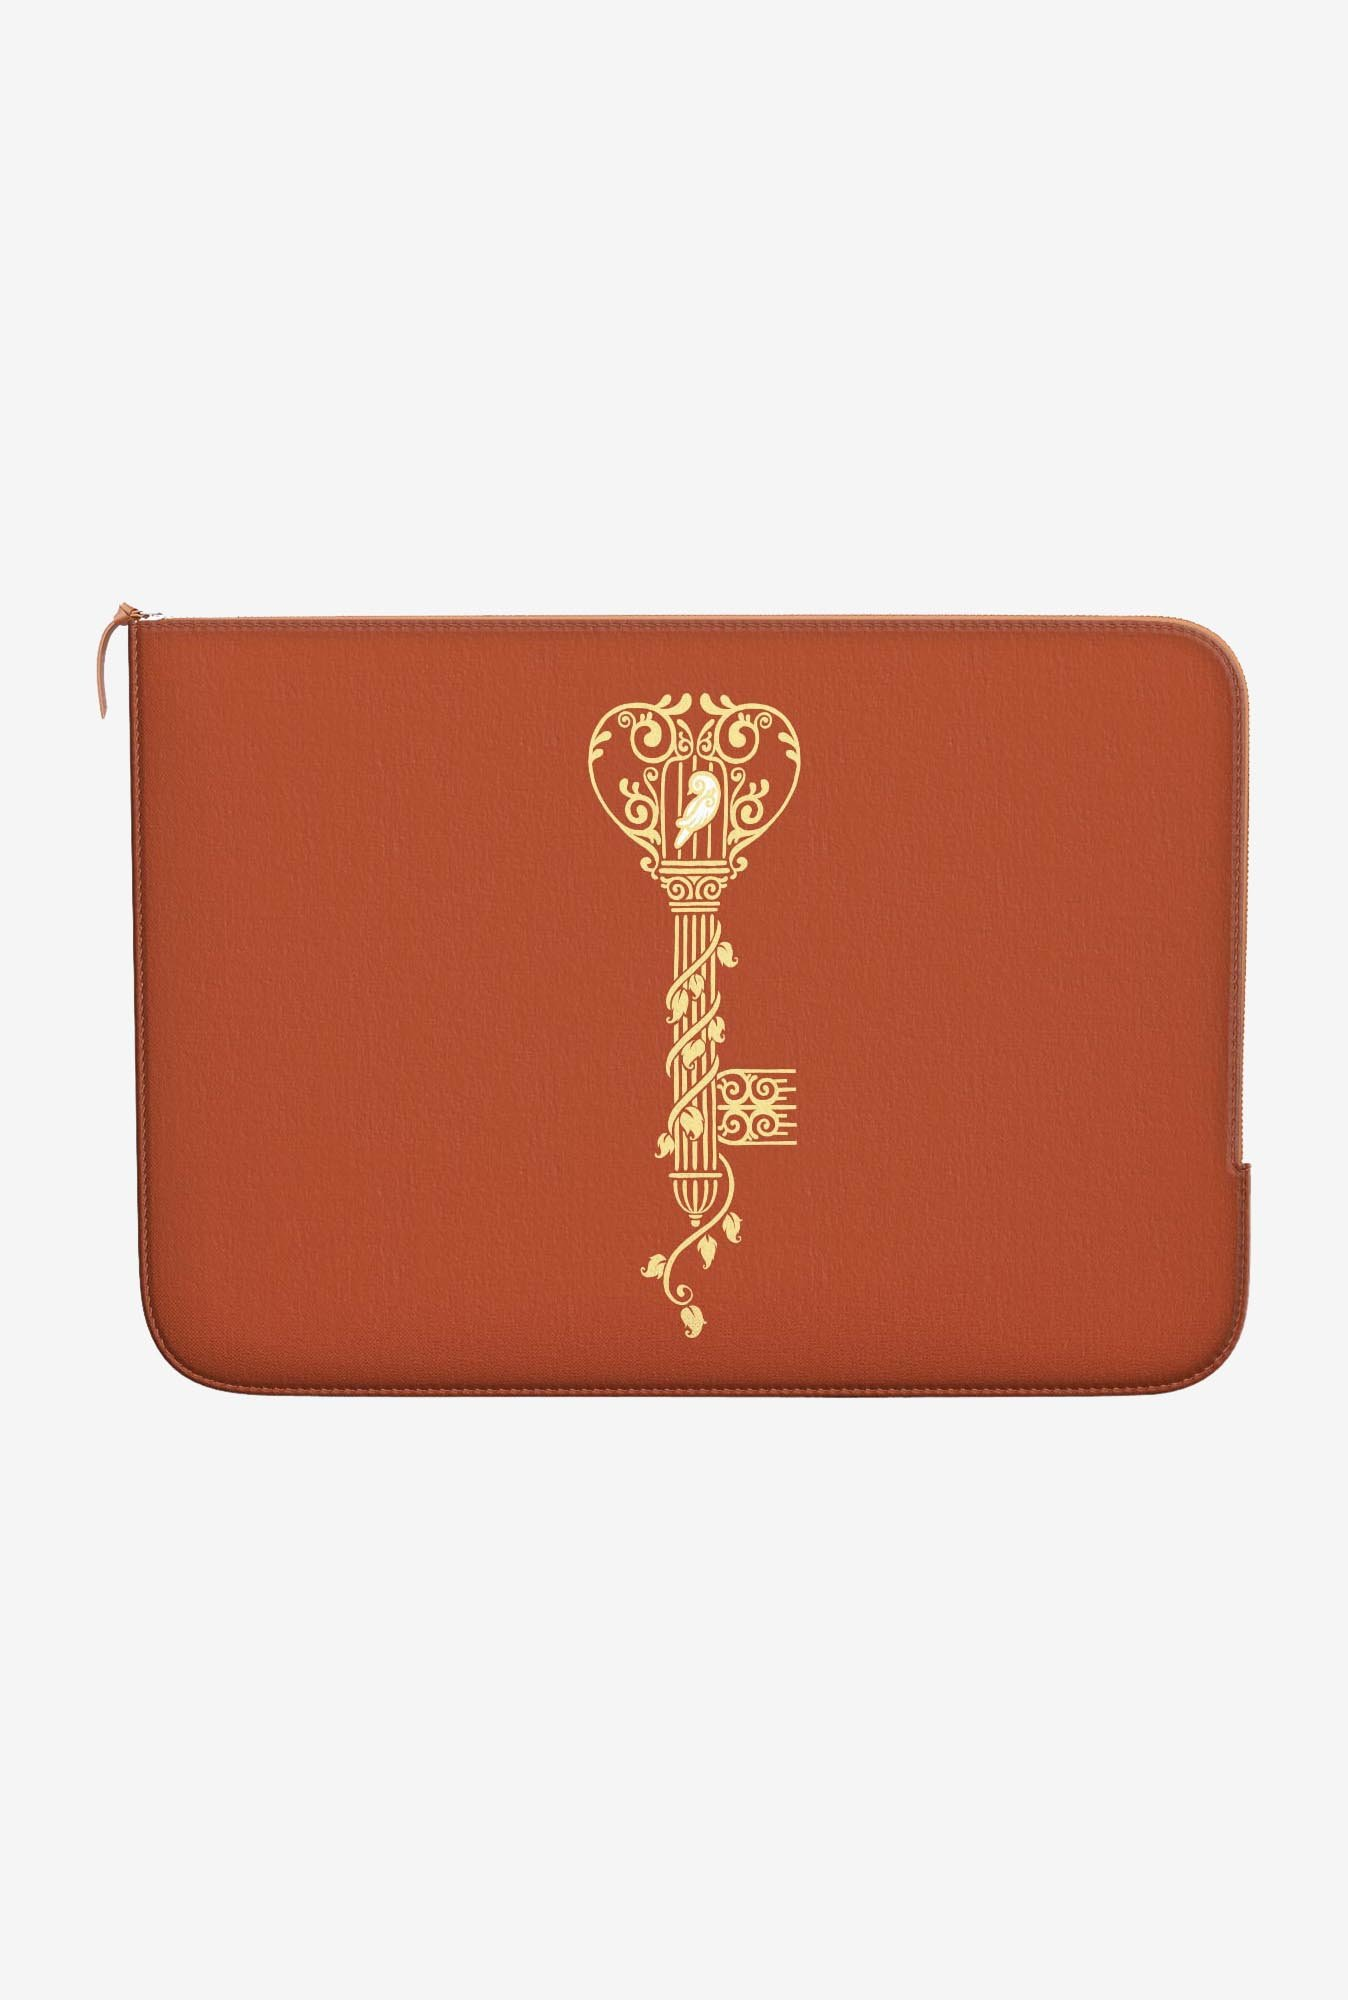 "DailyObjects Prisoner Macbook Pro 15"" Zippered Sleeve"